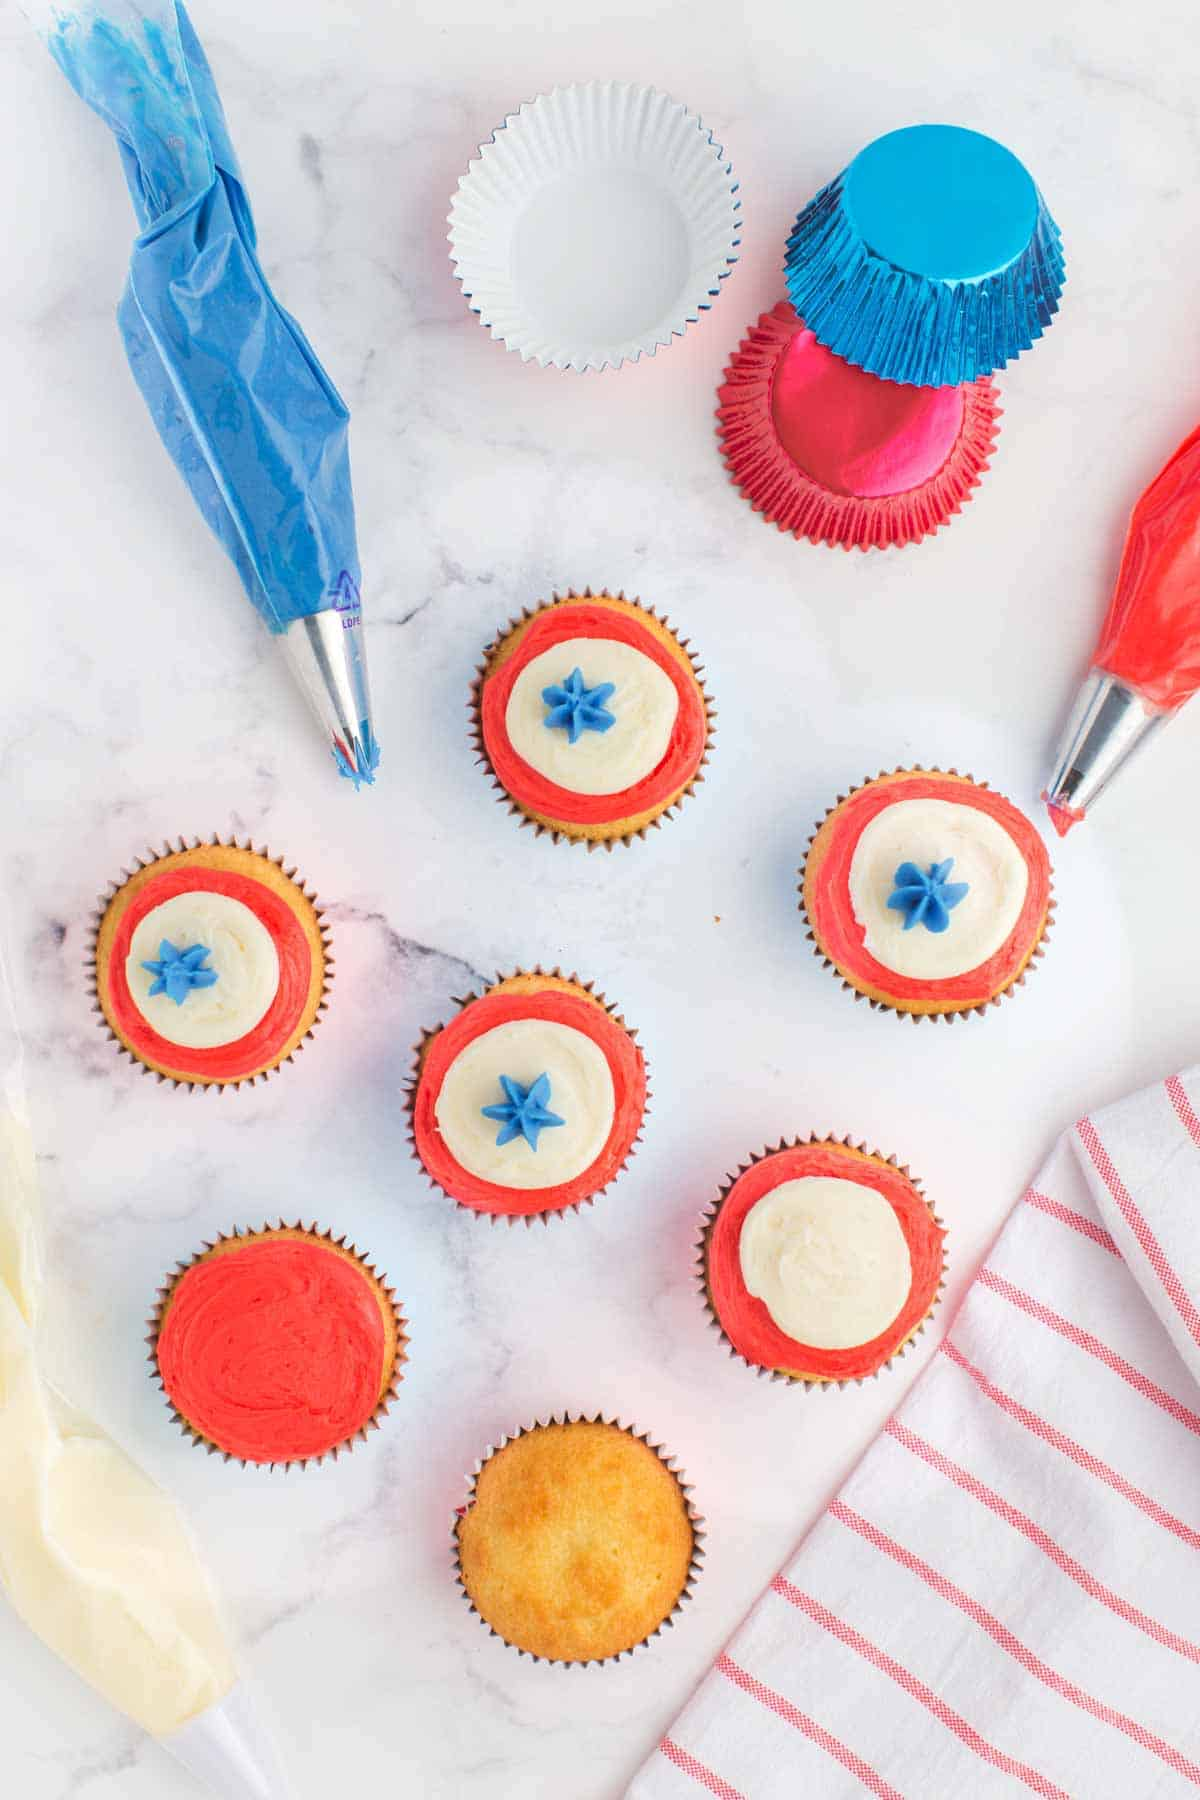 seven cupcakes at various stages of being decorated by piping red, white, and blue frosting